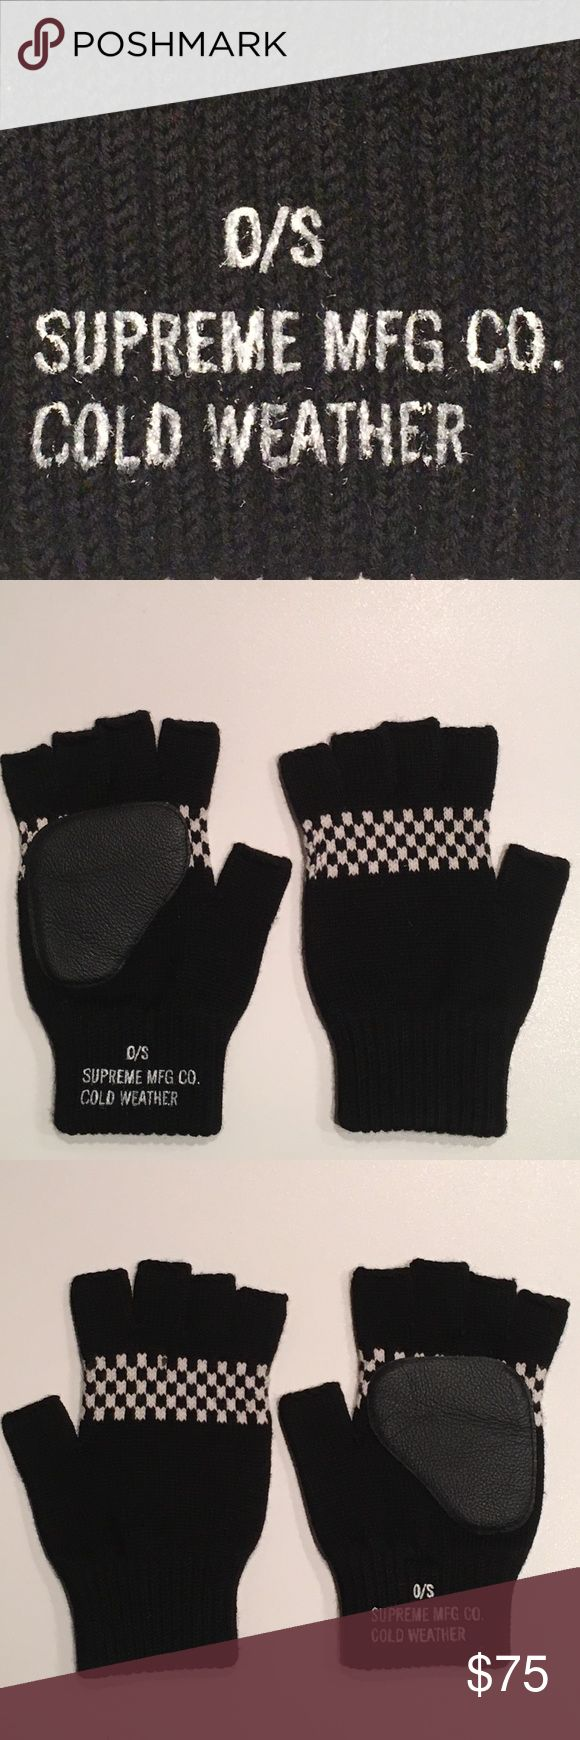 🆕 Supreme O/S Cold Weather Gloves BRAND NEW! 🆕 Supreme Fingerless O/S Cold Weather Gloves. RAND NEW! Black Leather Patch. Super Thick & Cushiony! NEVER WORN! MINT! Supreme Jackets & Coats